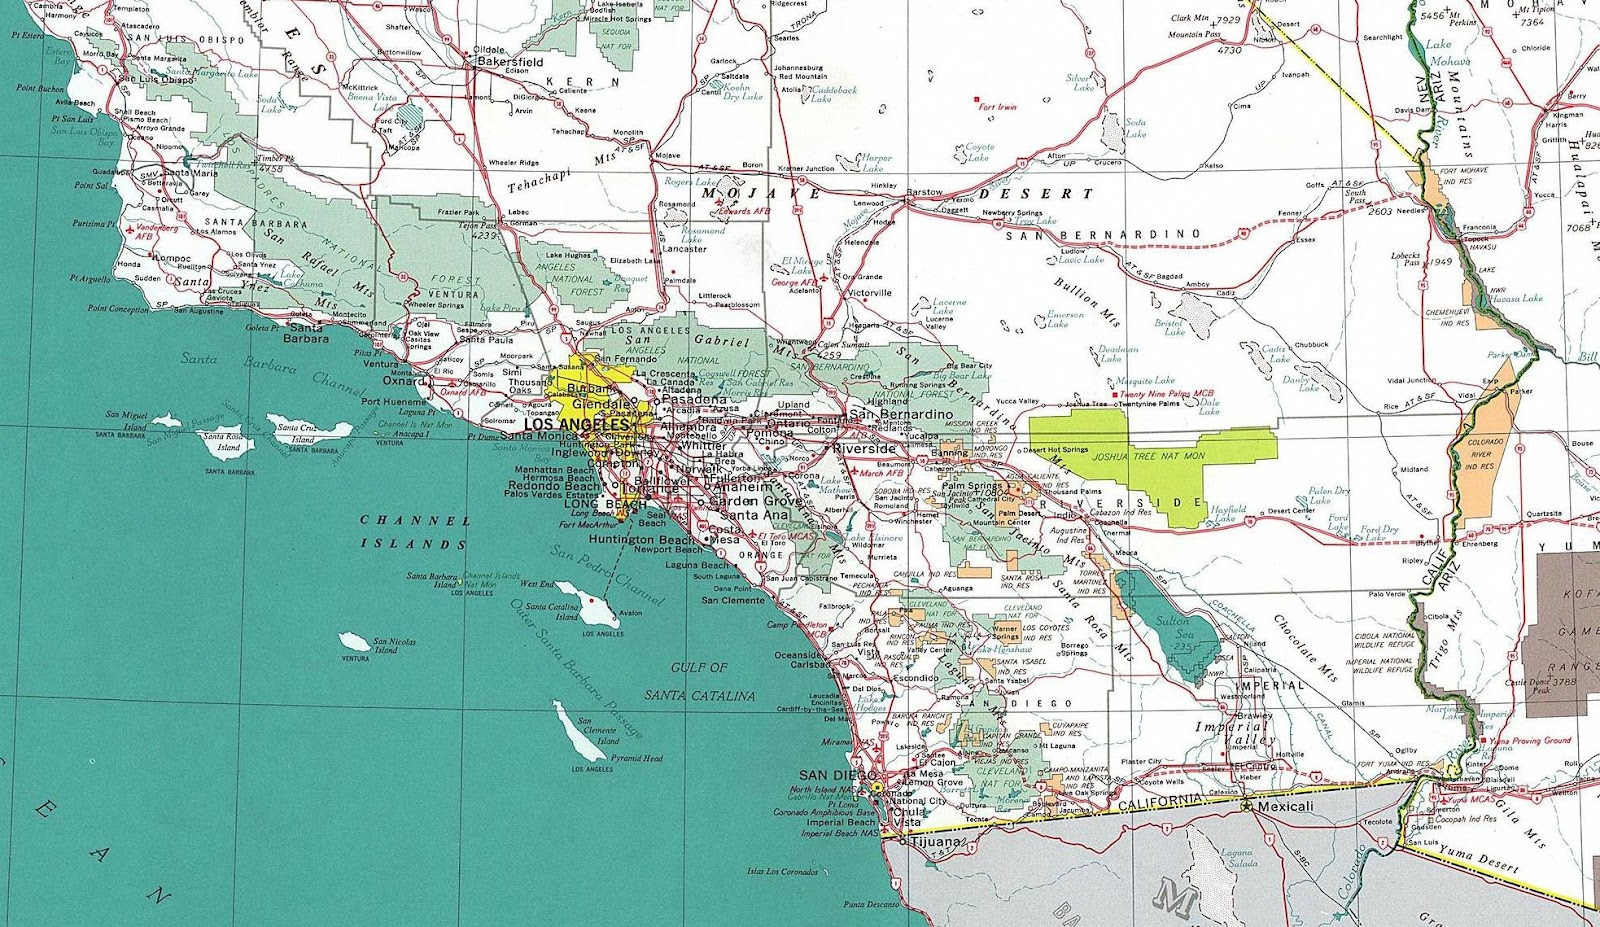 Map Of Southern California Freeway System - Klipy - Map Of Southern California Freeway System